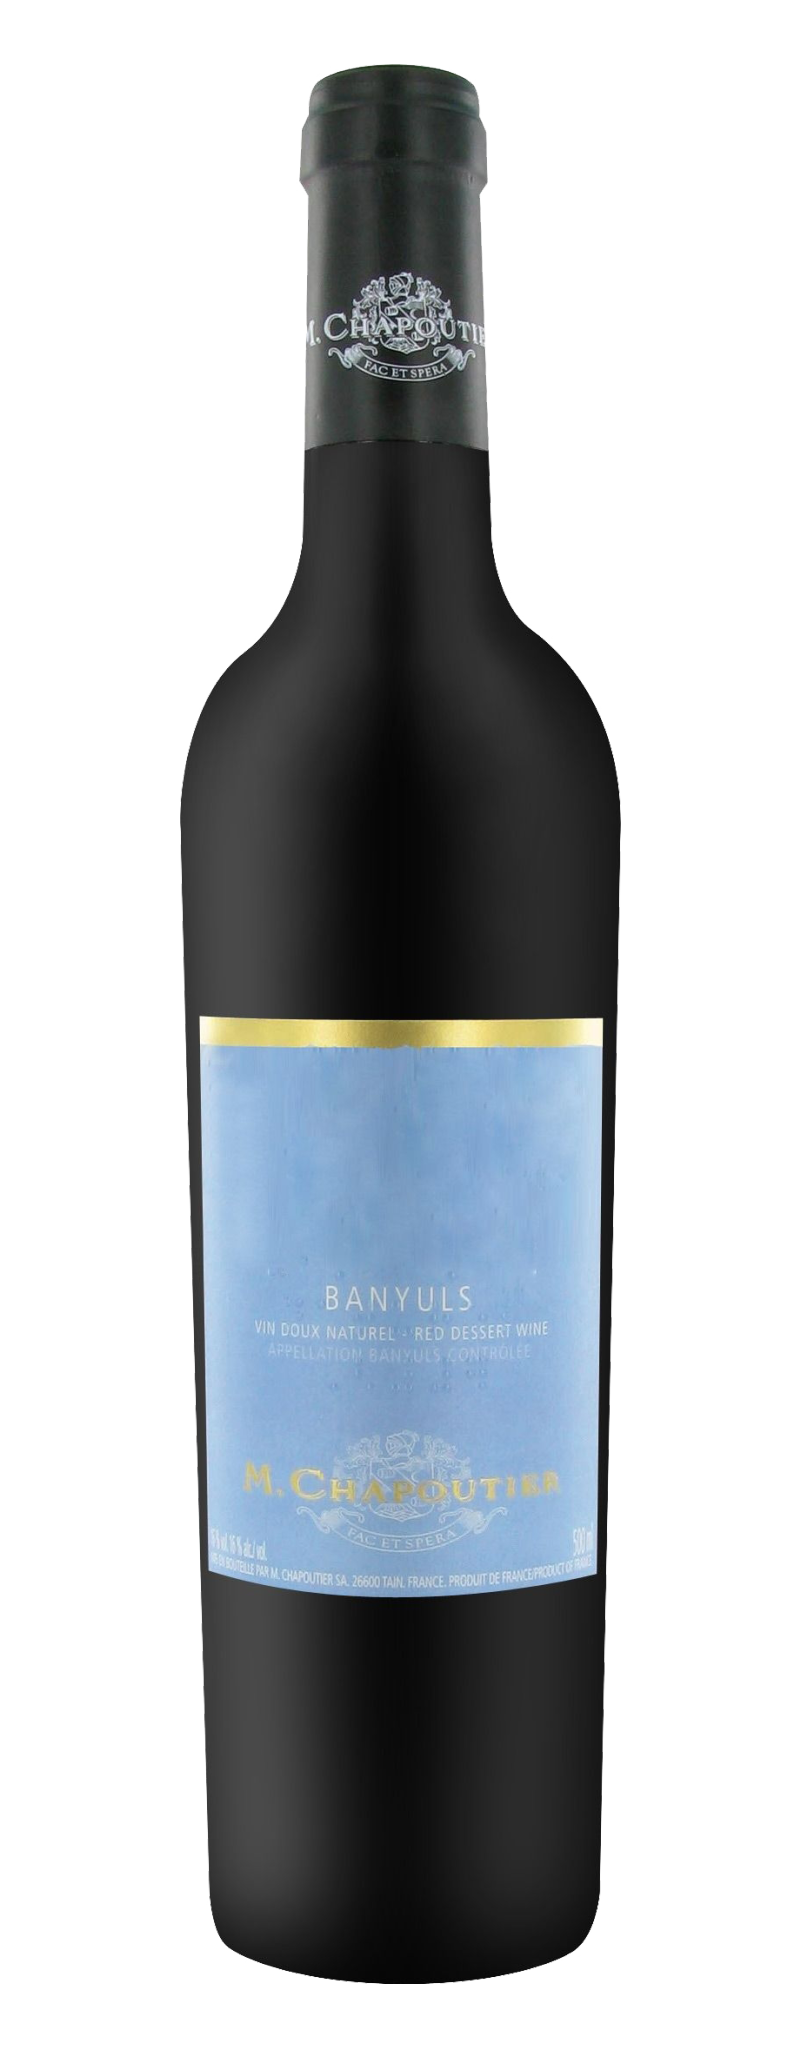 Michel Chapoutier - Banyuls 50 cL  - 500ml